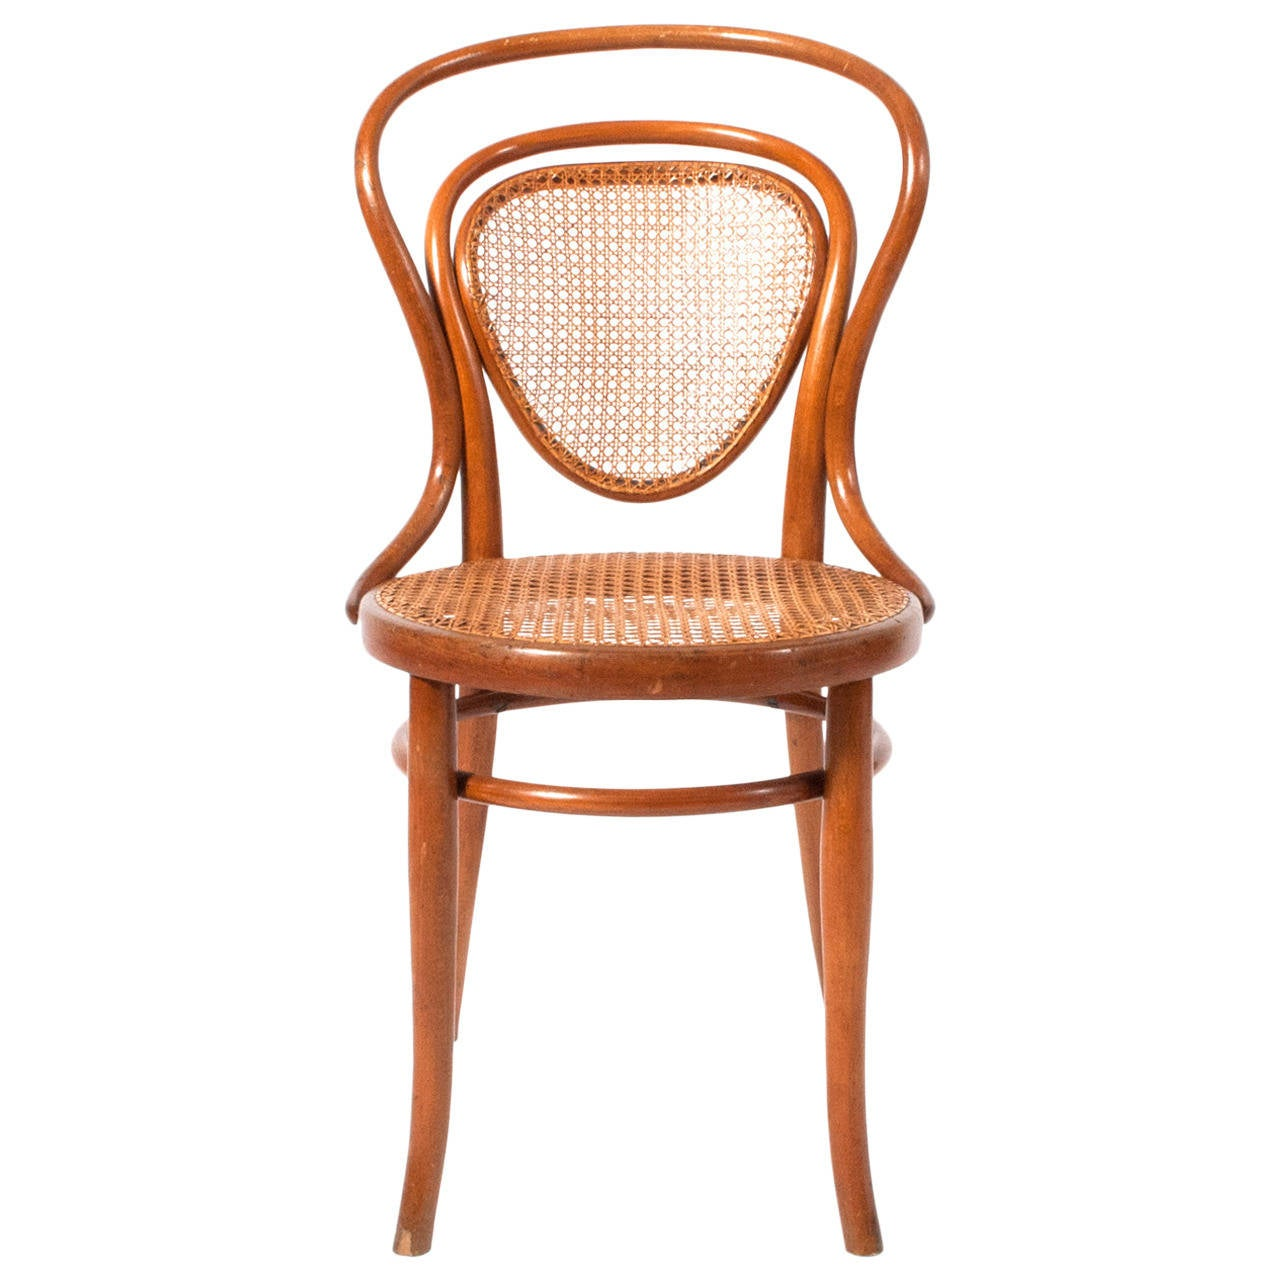 early j u0026 j kohn bentwood chair